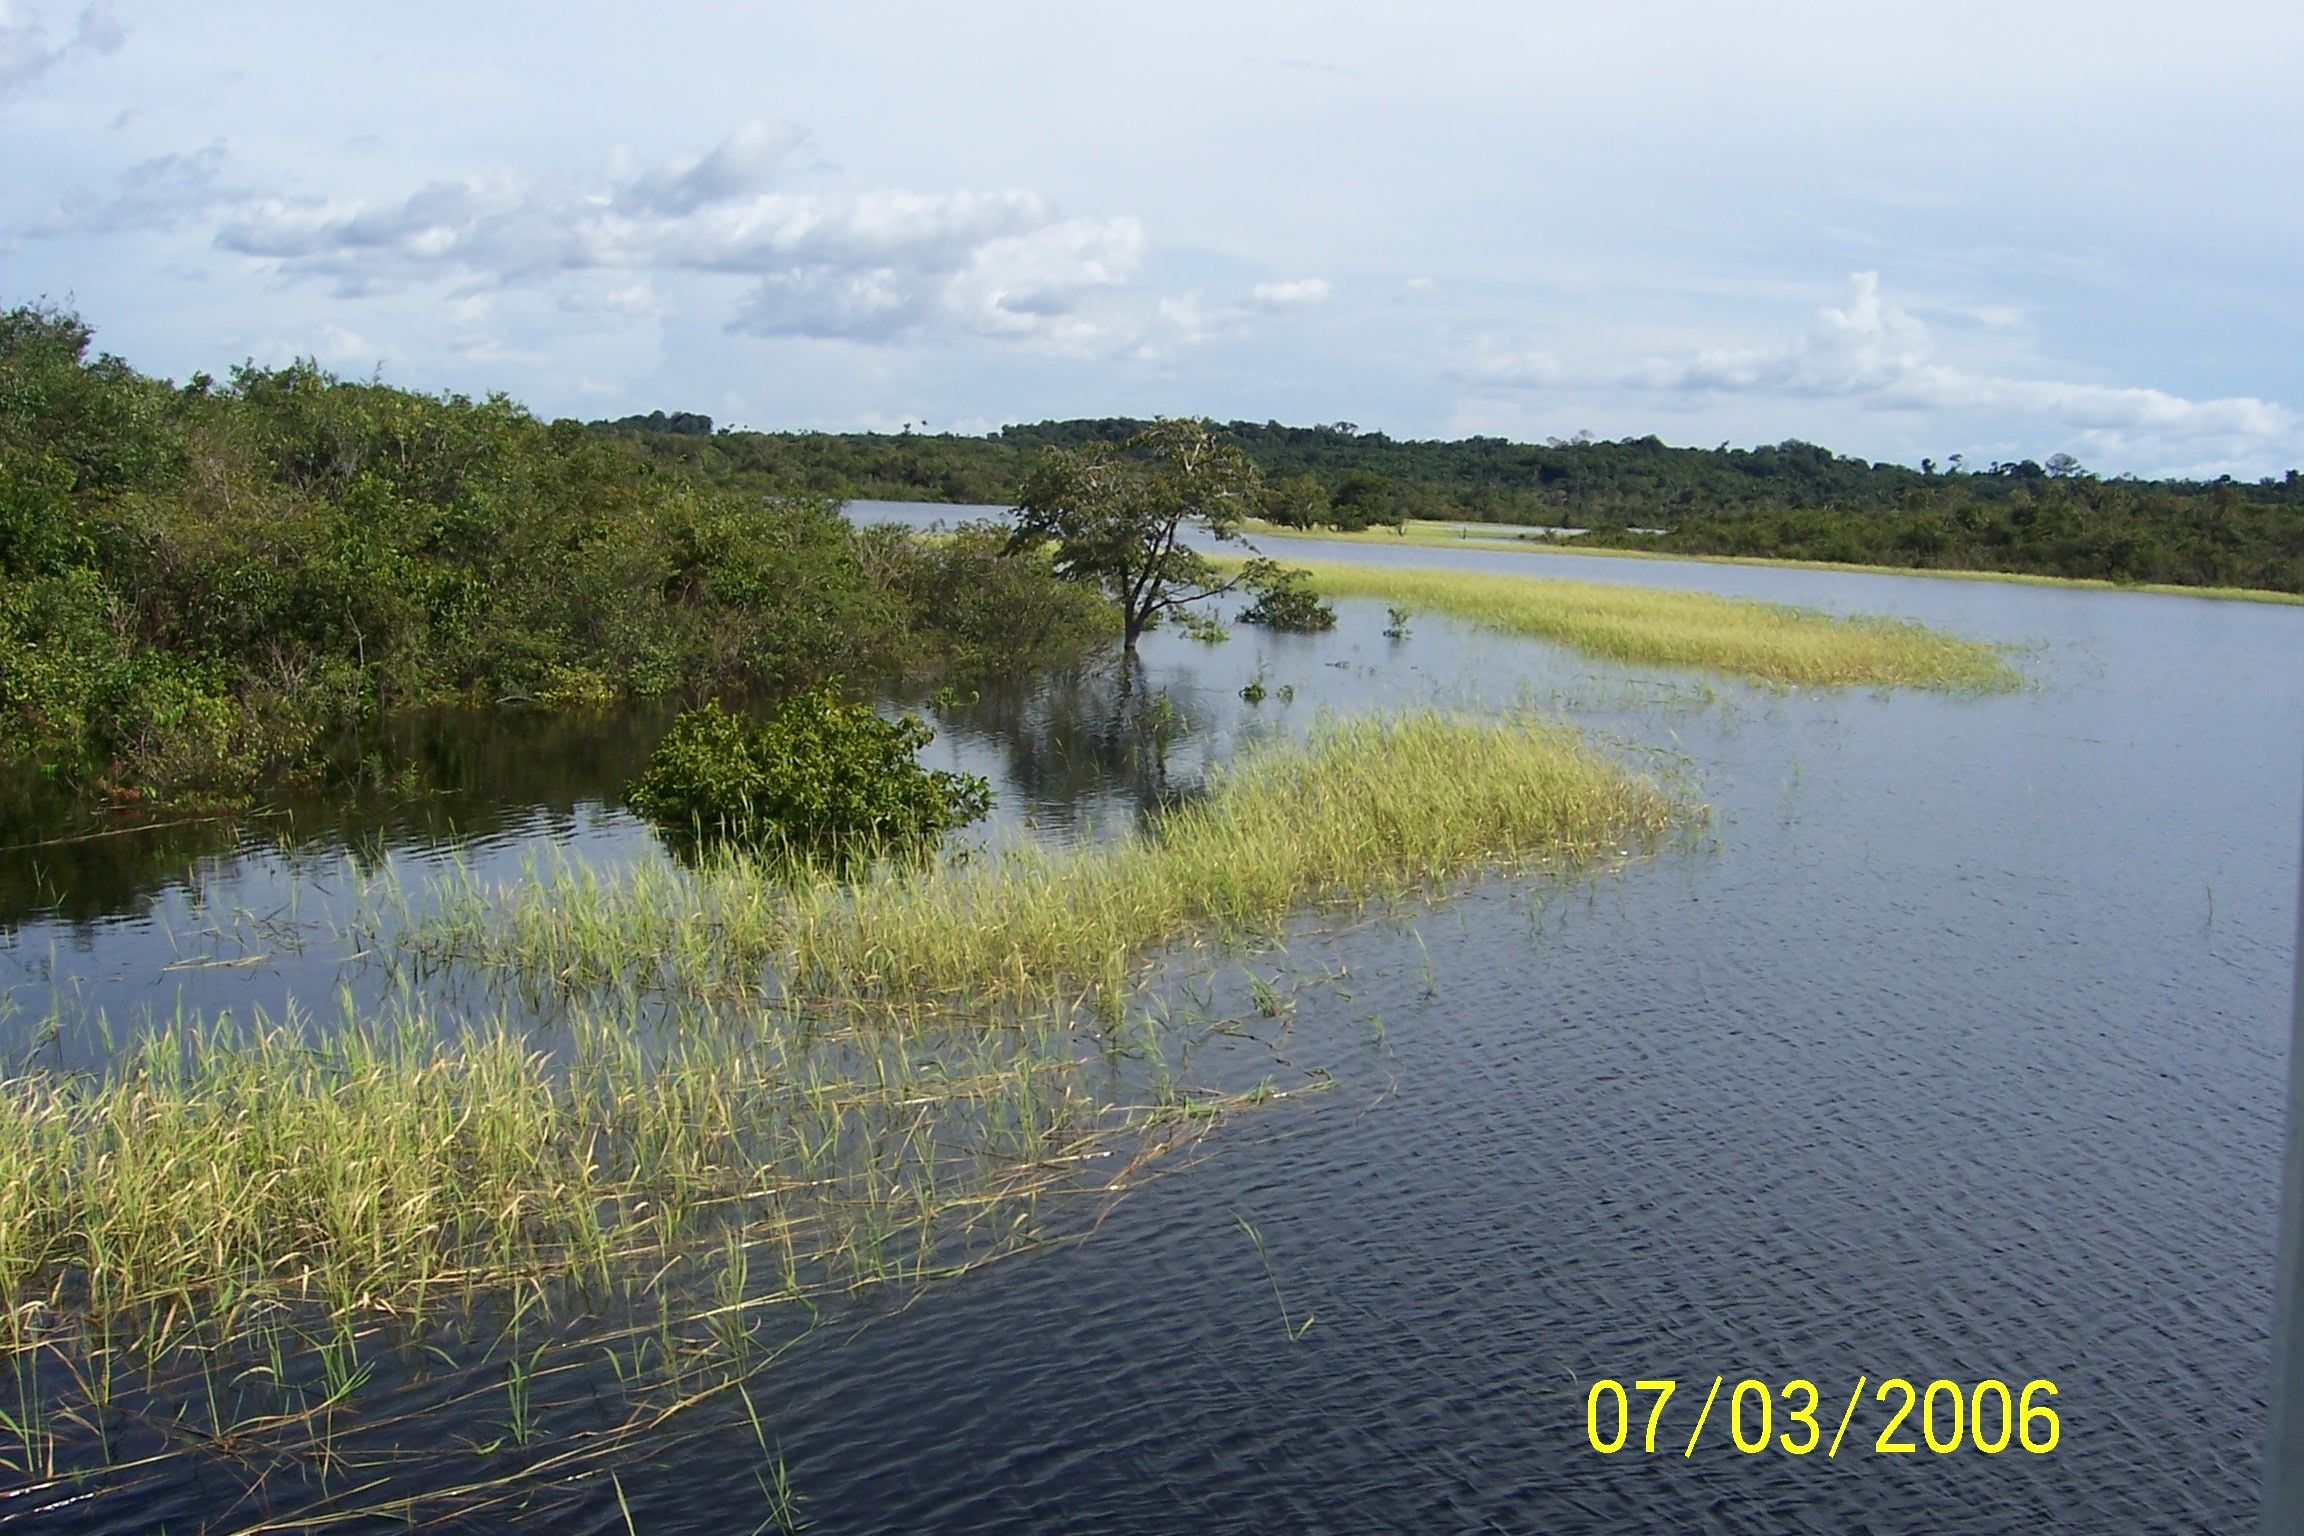 Amazon River near by our house on the water